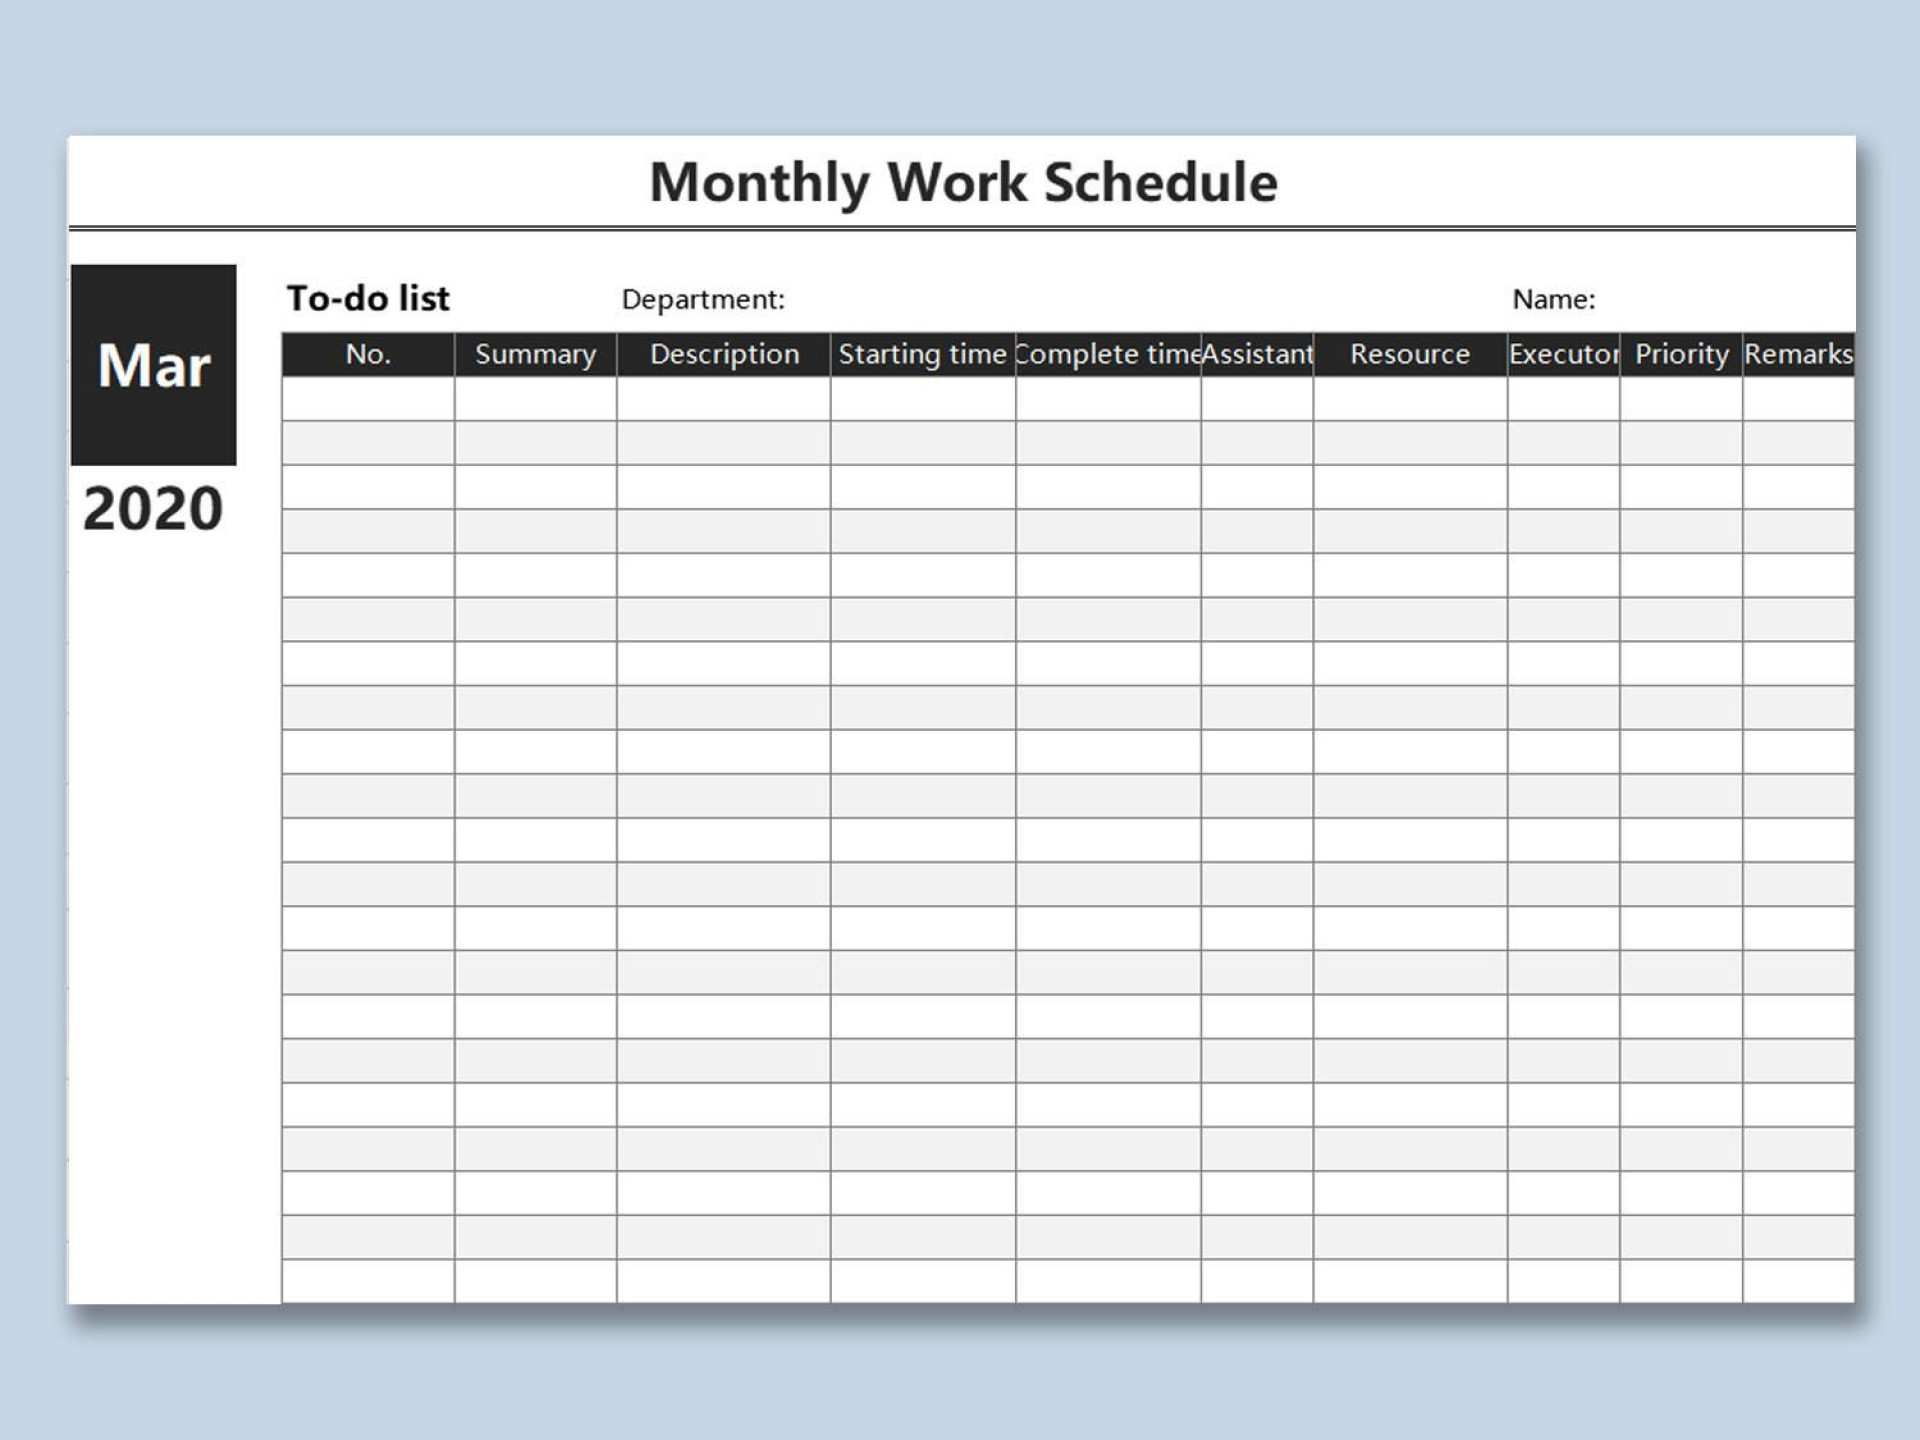 000 Magnificent Weekly Work Schedule Template High Resolution  Monthly Excel Free Download For Multiple Employee Plan1920